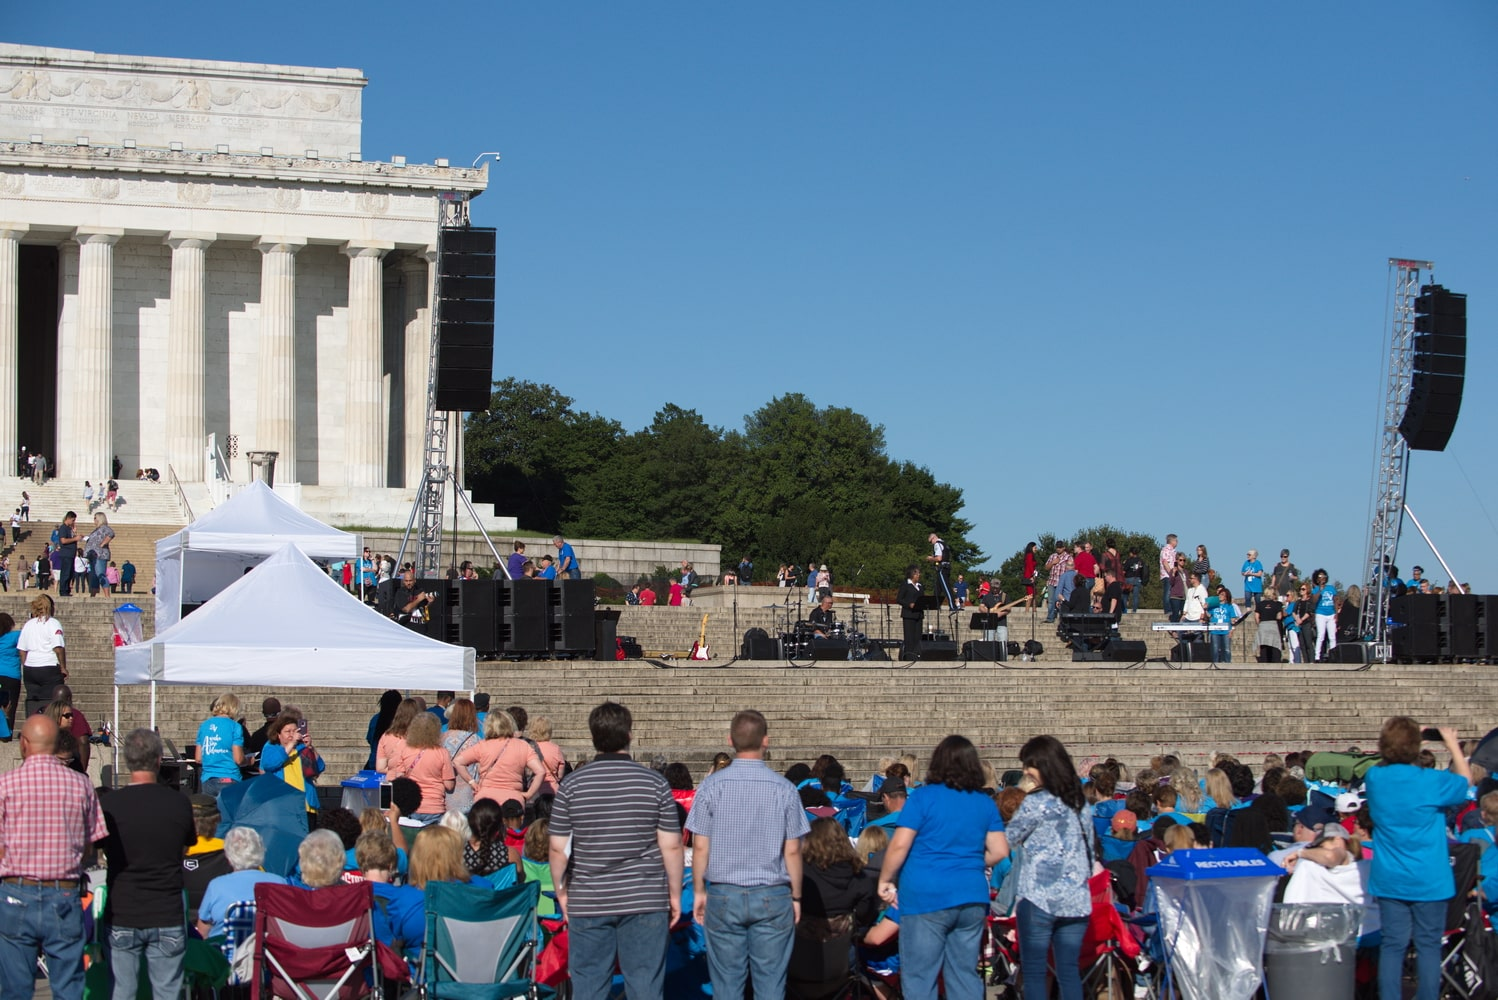 spectators enjoy live music during this rally at the Lincoln memorial in Washington DC